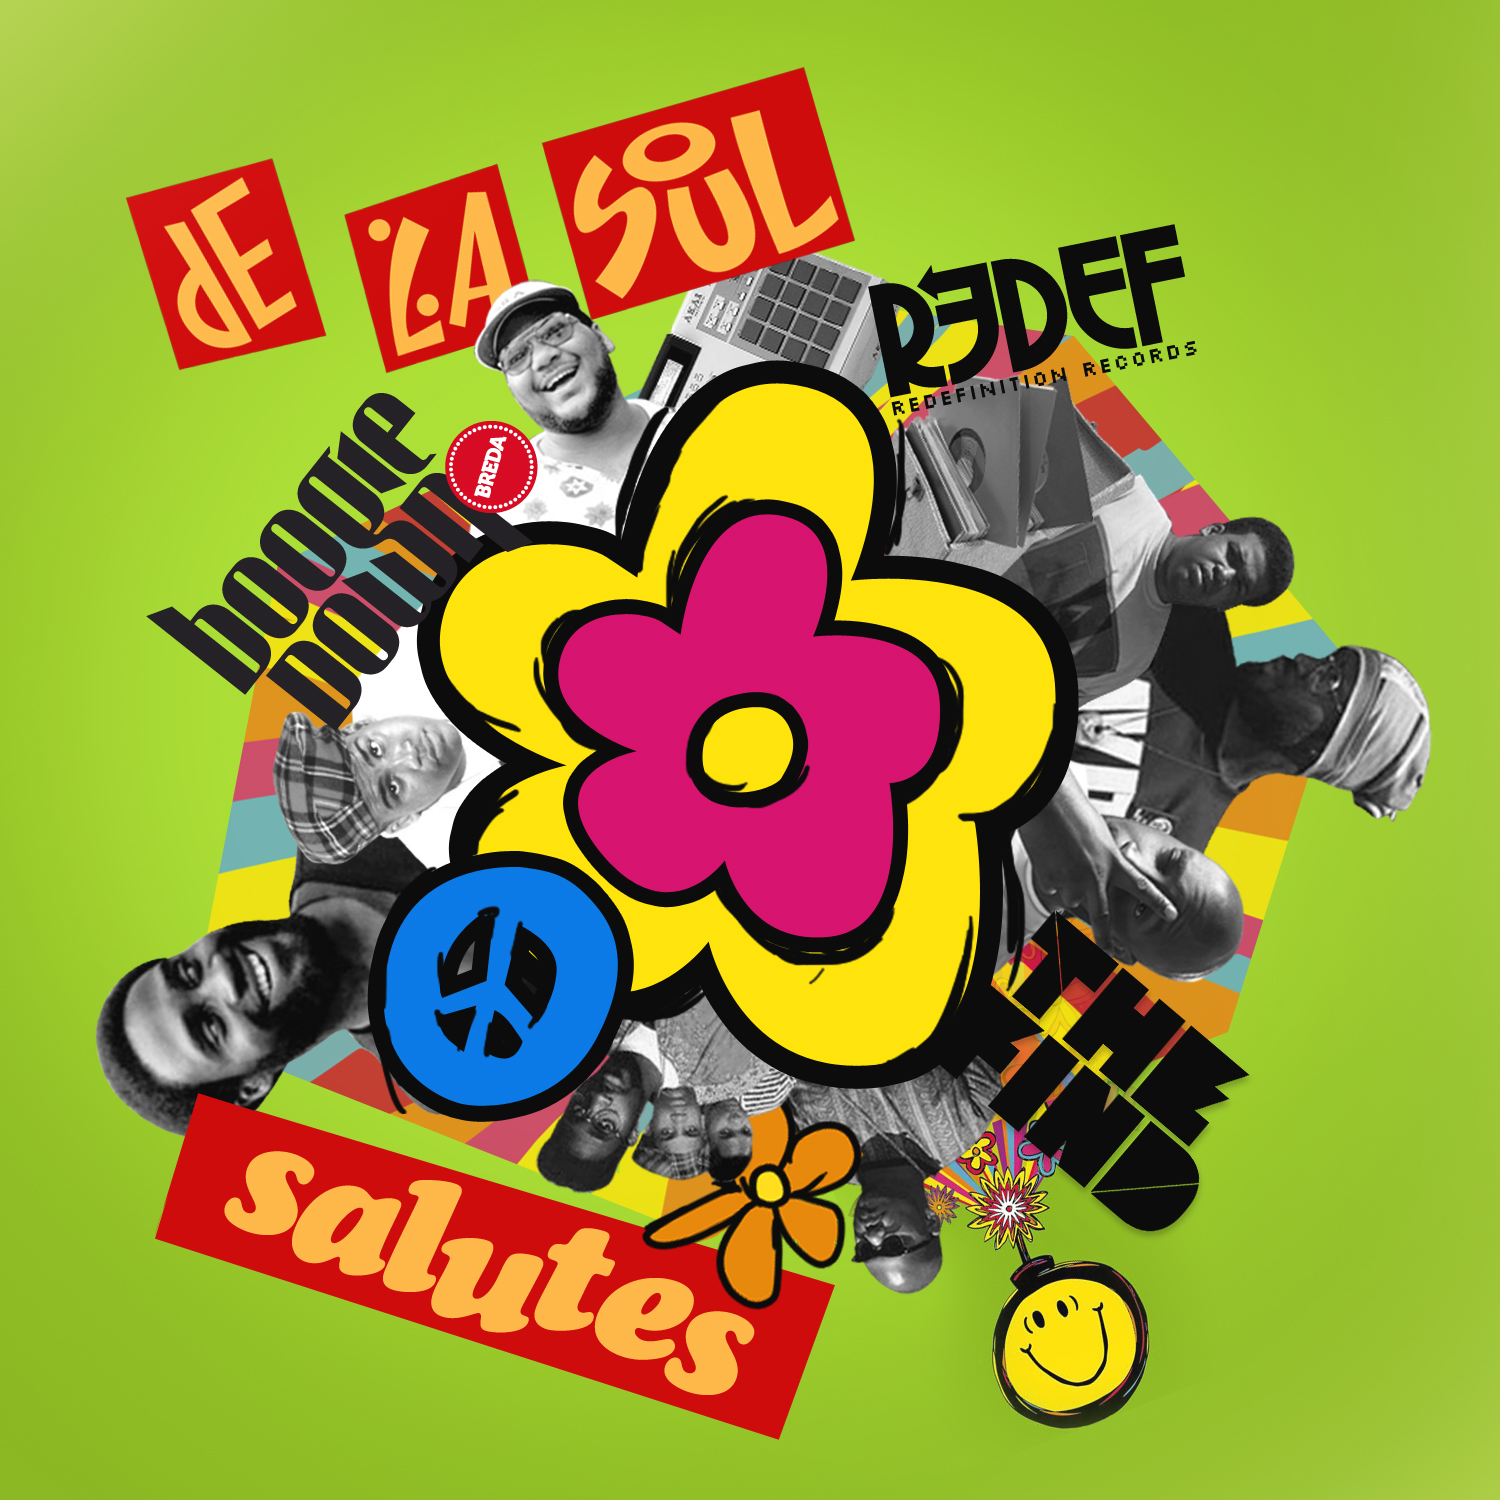 Free Download: Various Artists – De La Soul Salutes EP (Limited Time Only)